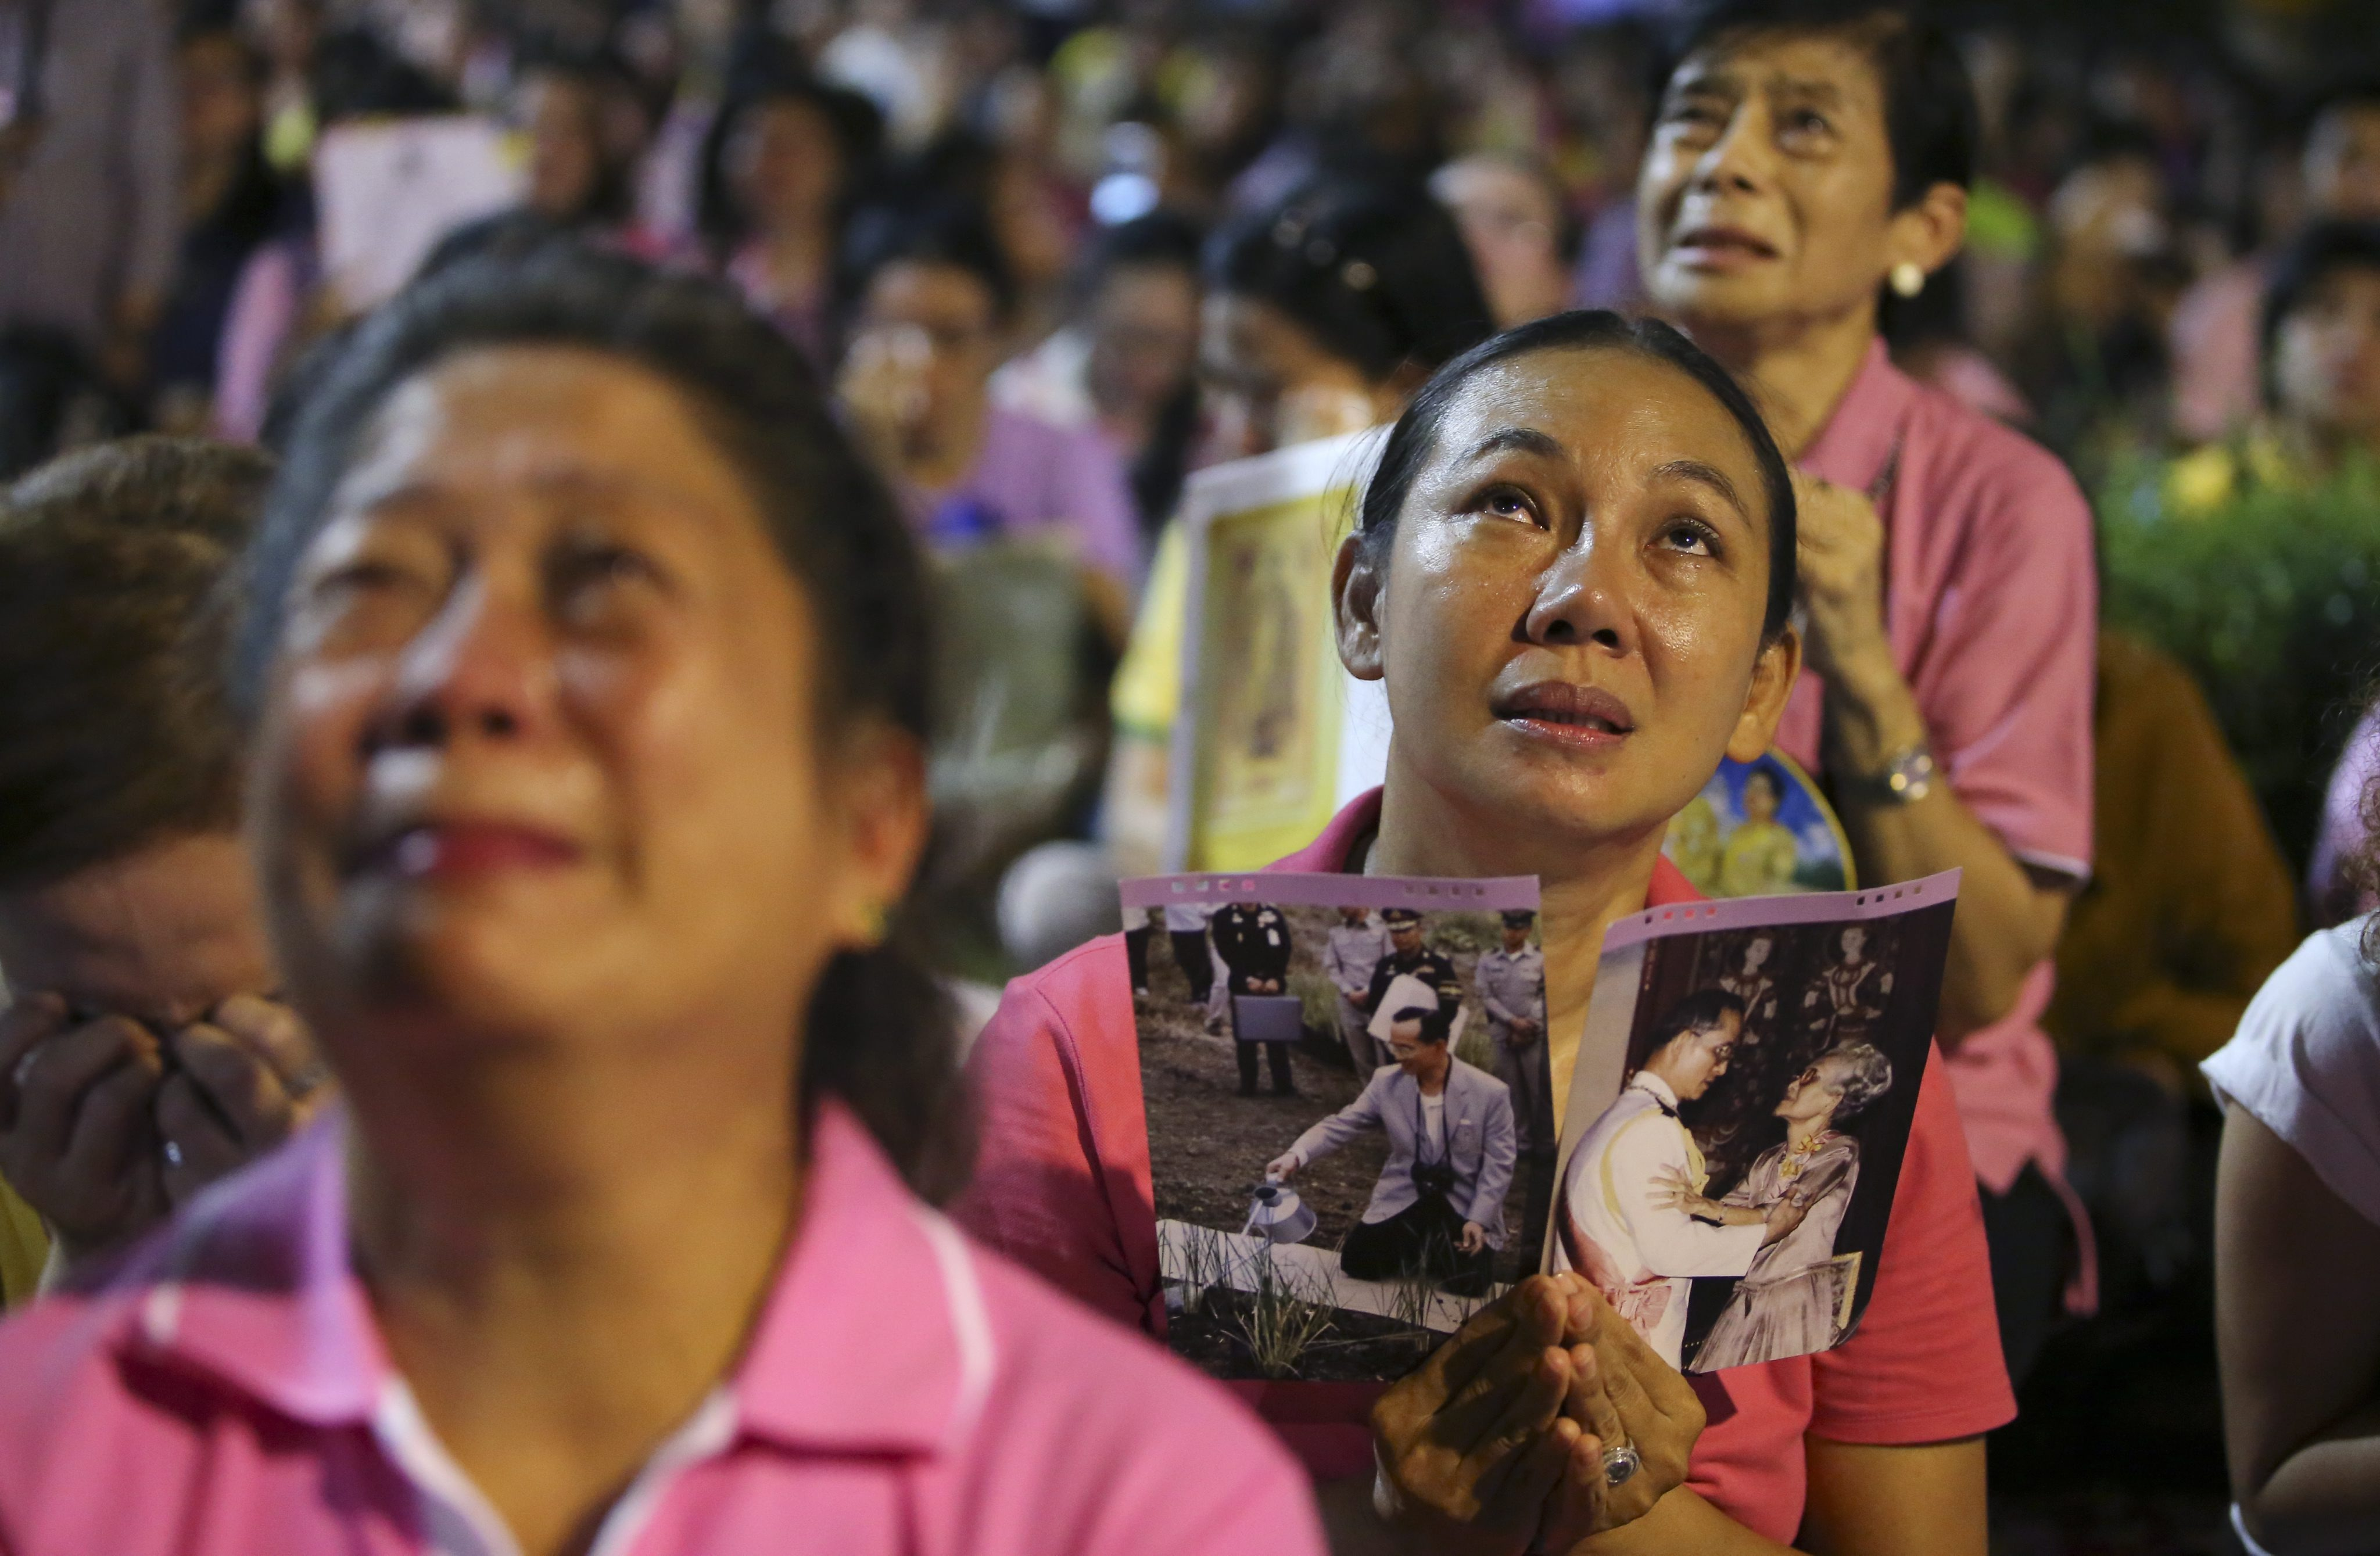 Long live the king': Thailand mourns death of beloved king Bhumibol